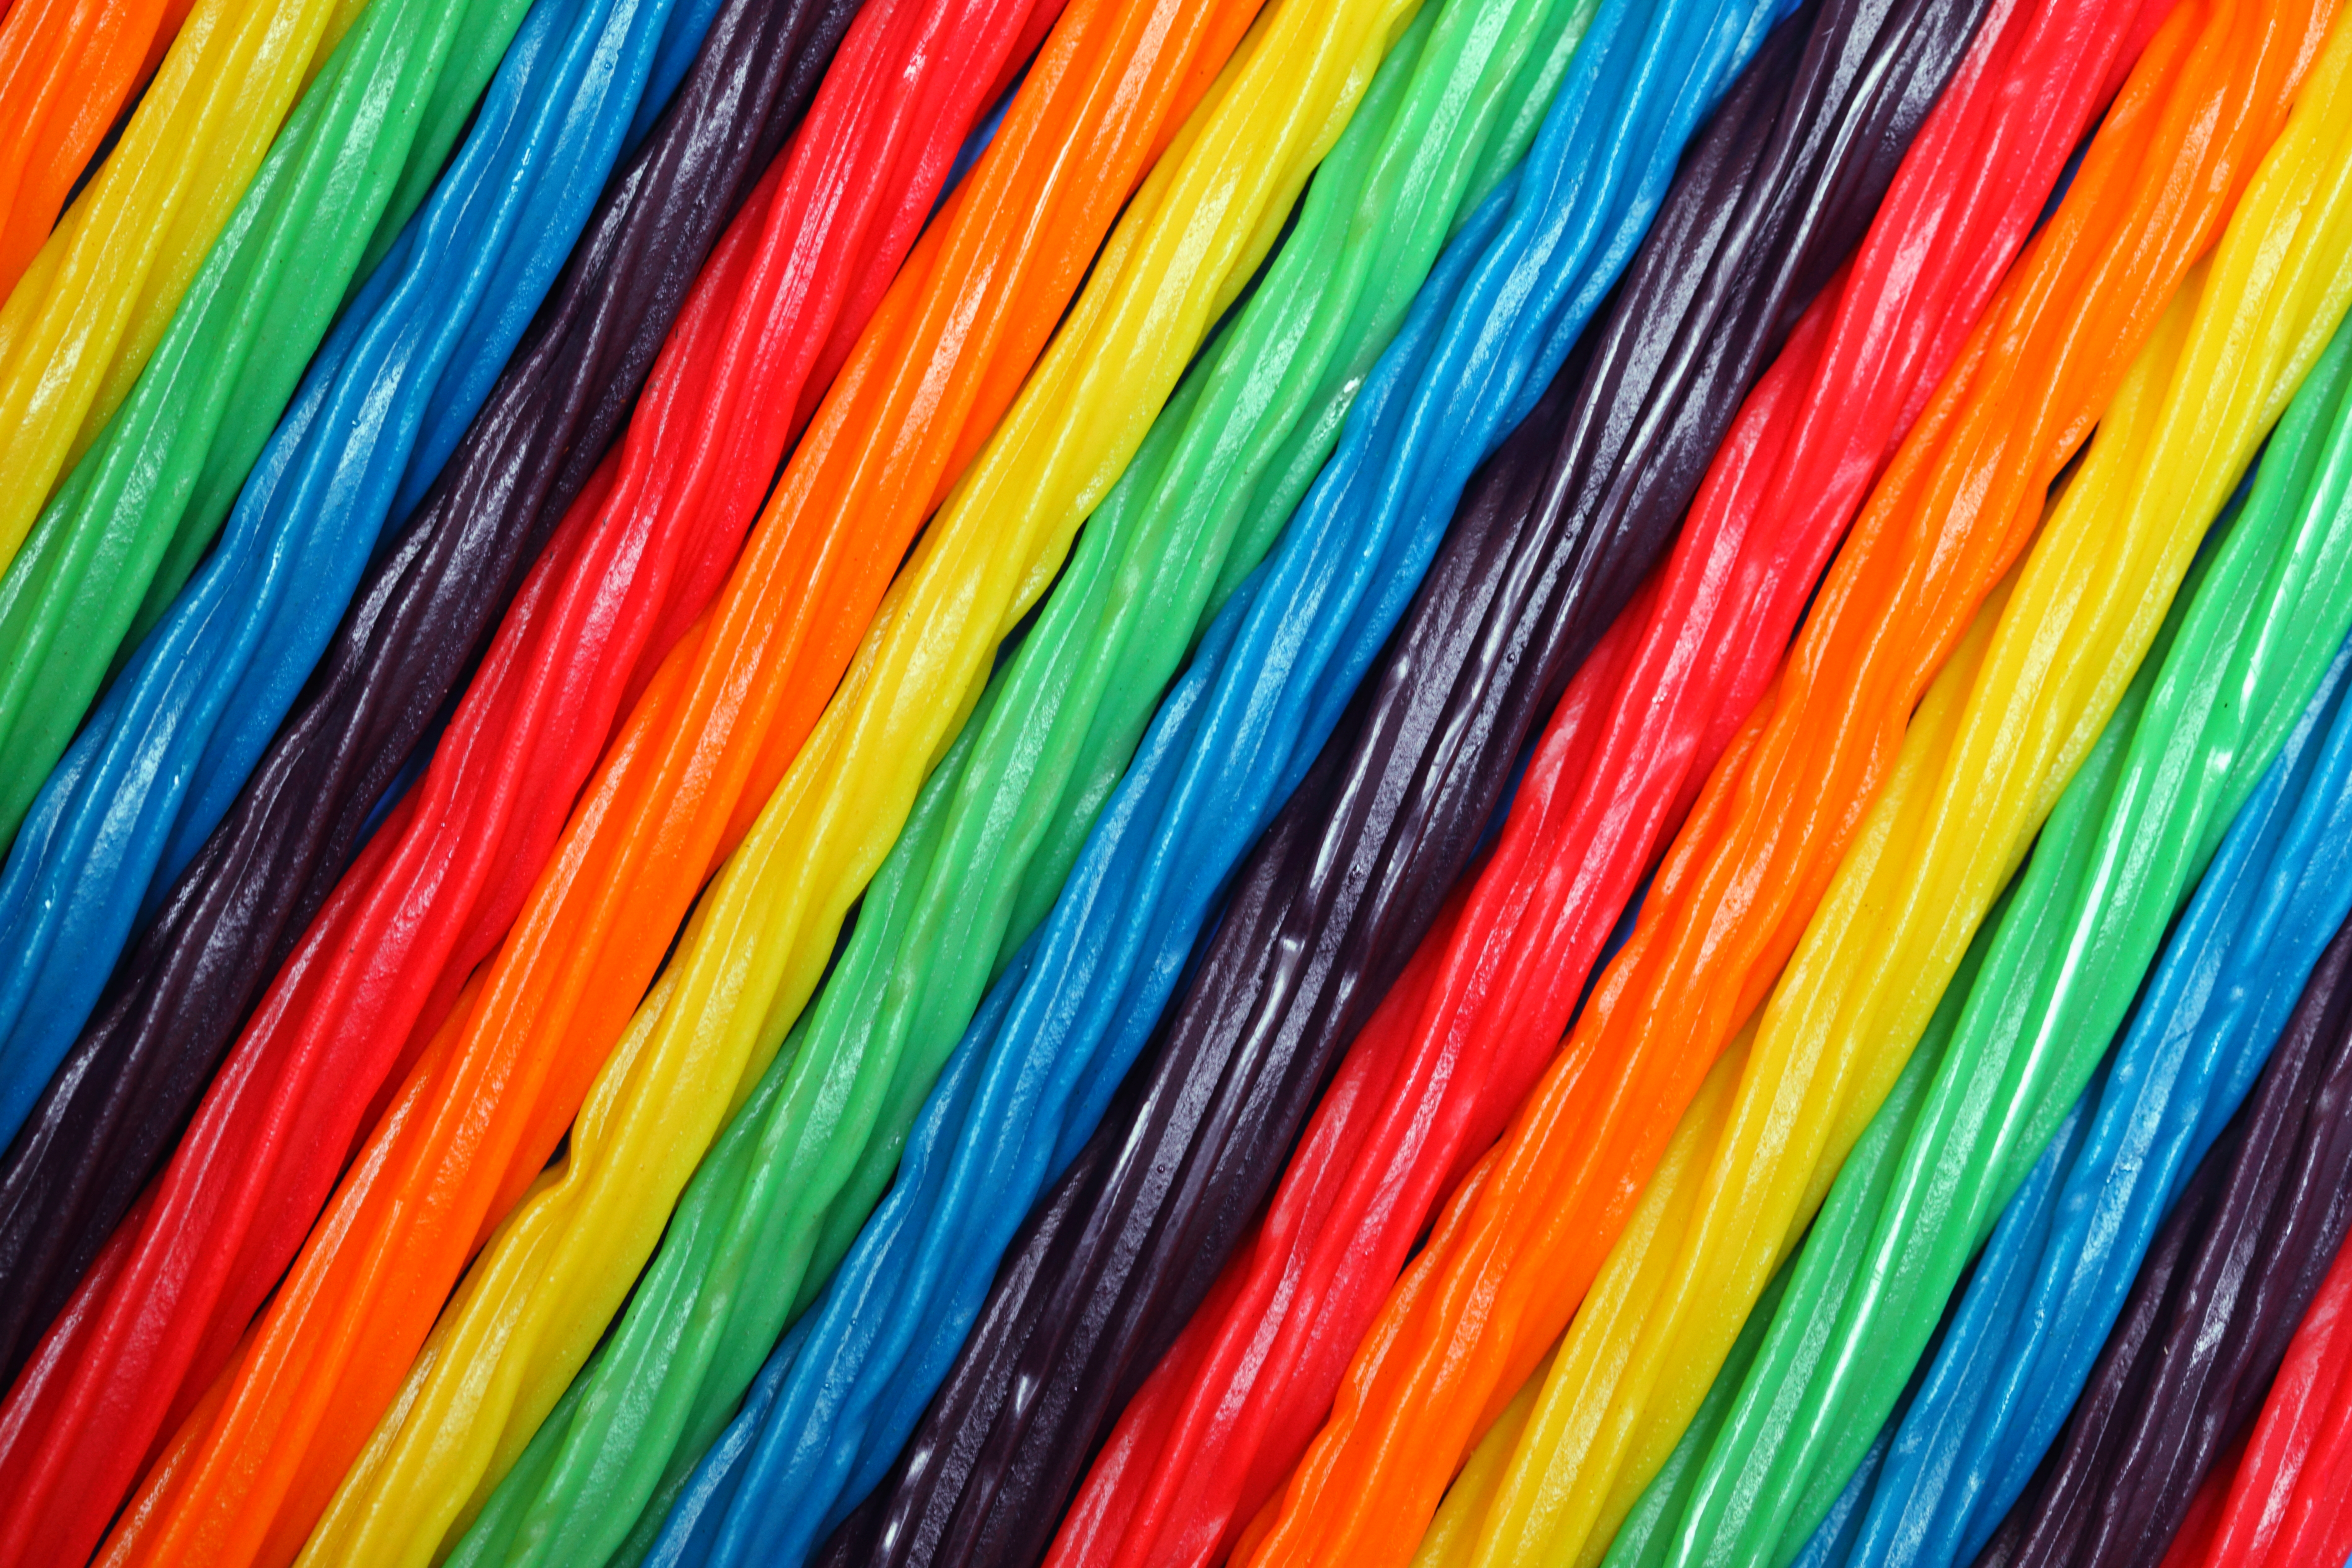 Colorful rainbow soft licorice candy